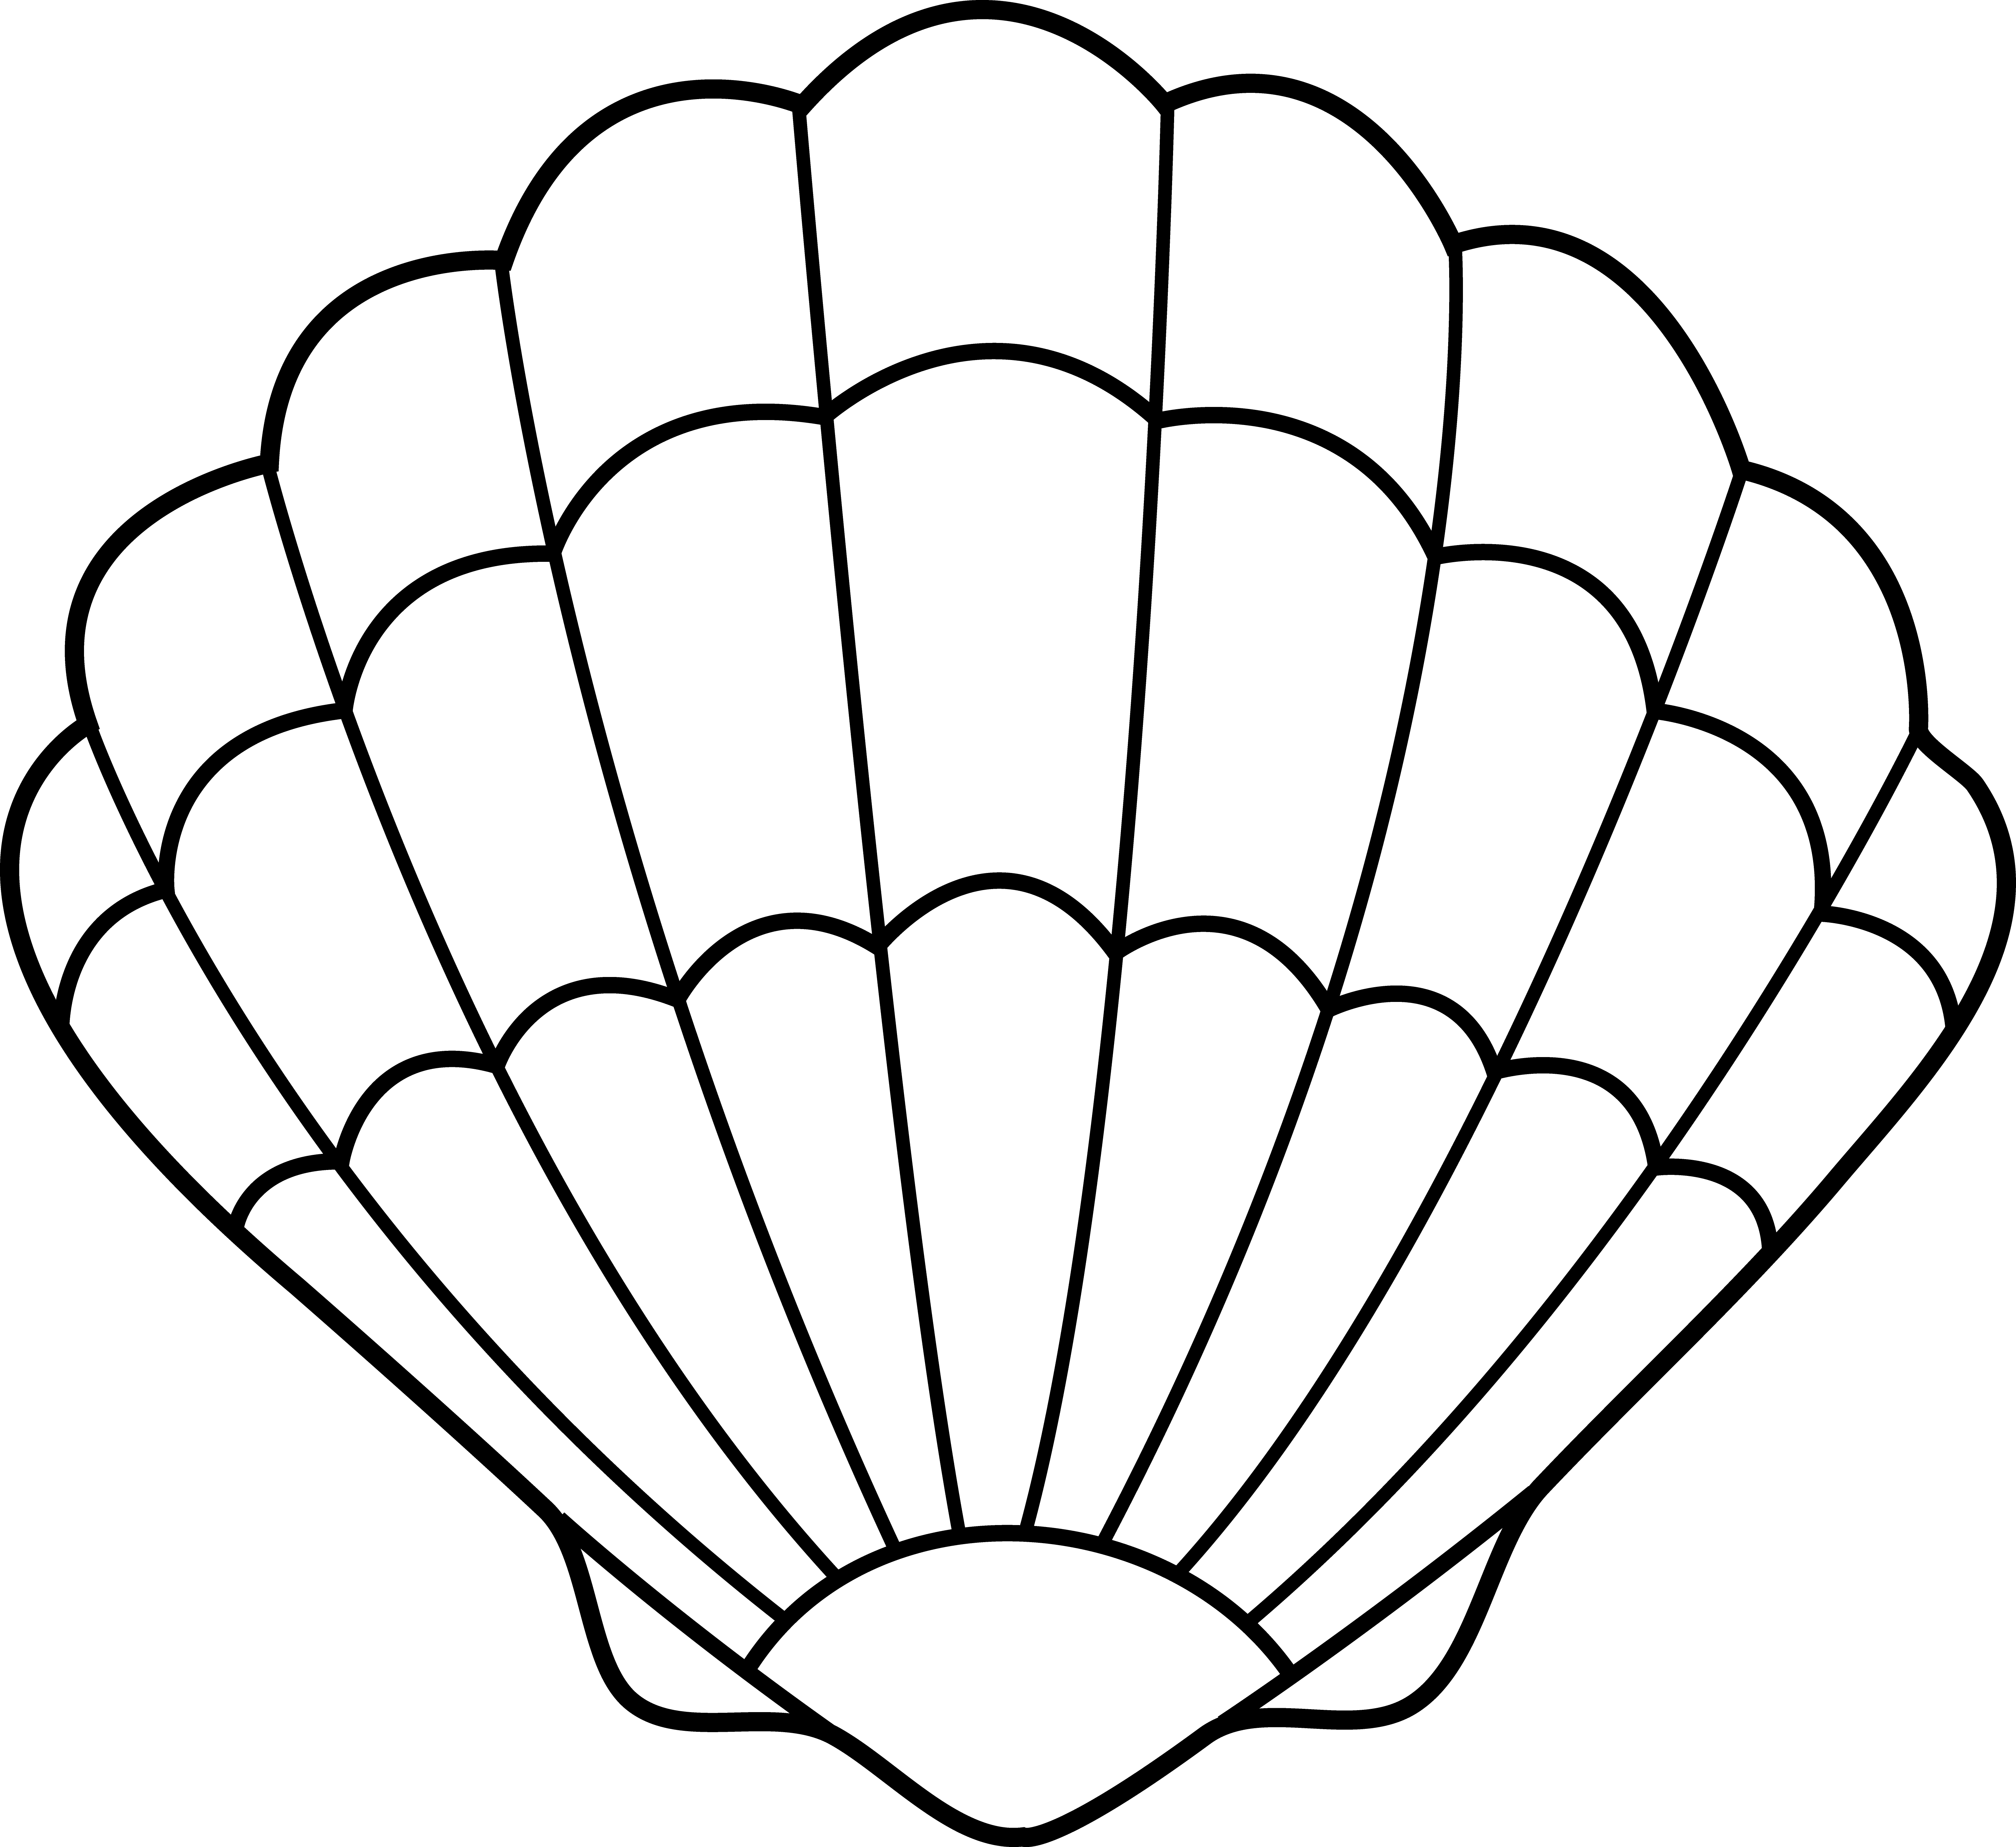 seashell coloring page coloring pages of seashells coloring home page seashell coloring